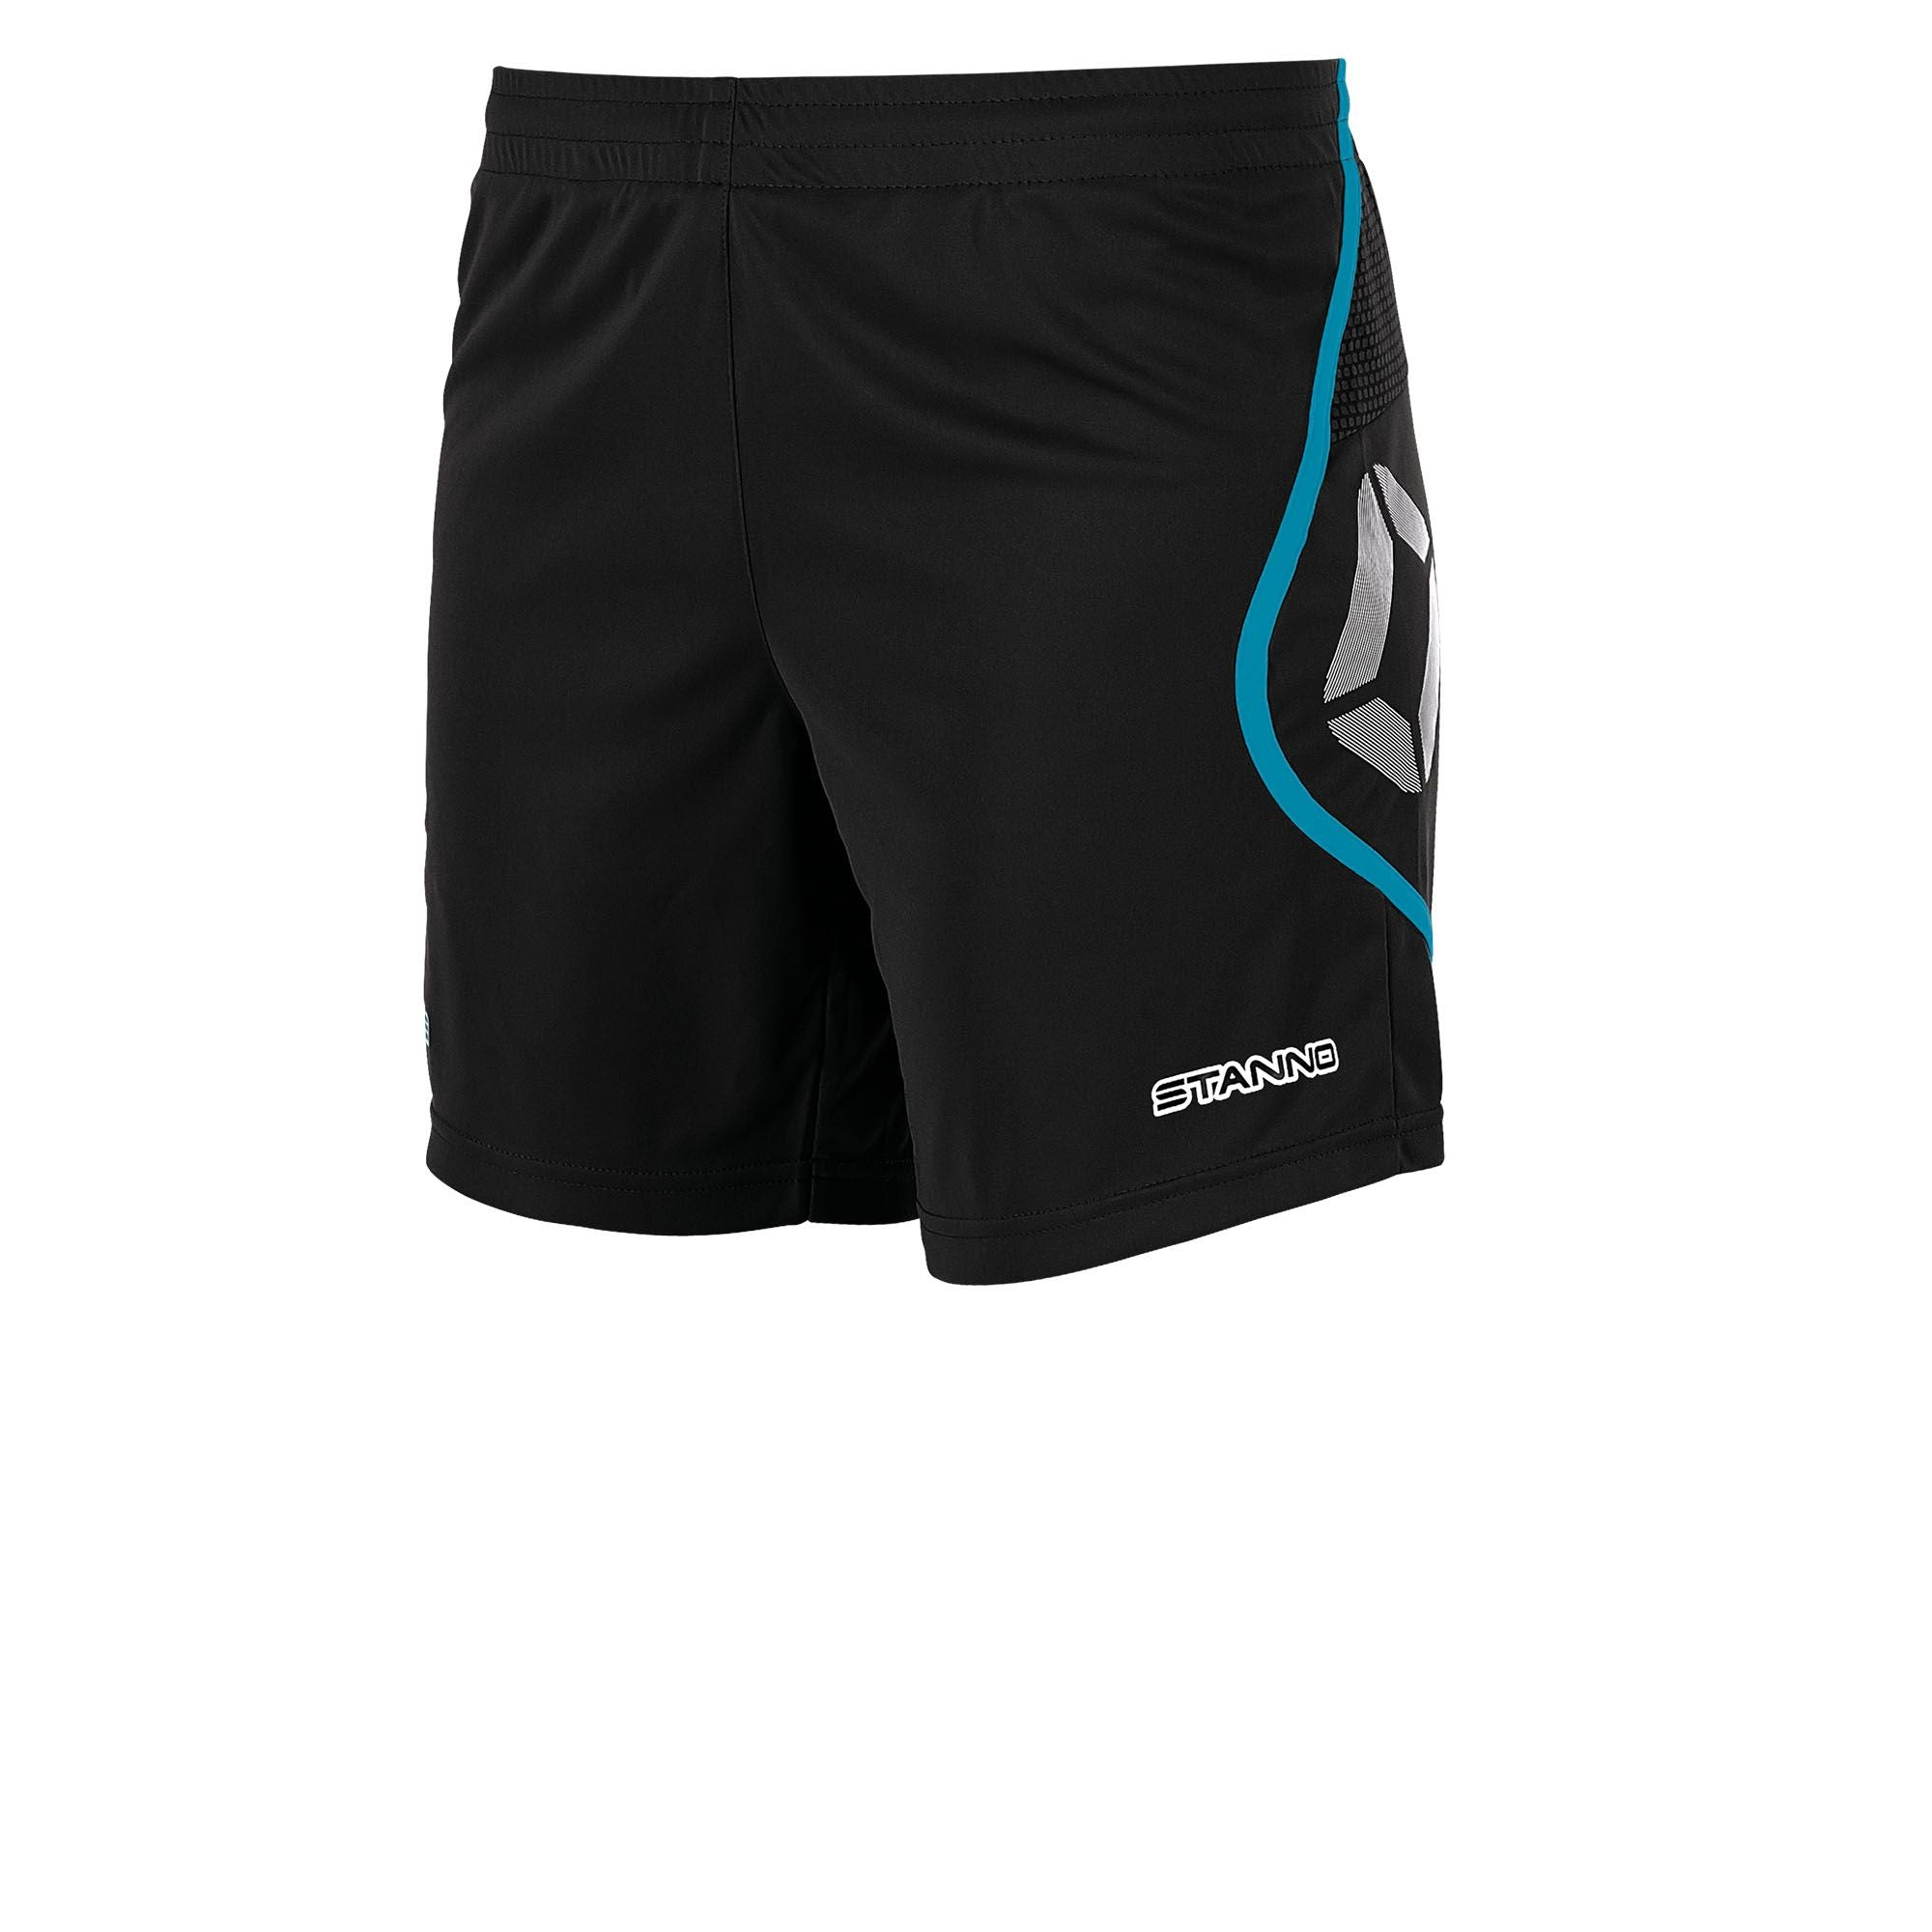 Stanno Pisa Shorts Ladies - Black/Aqua Blue